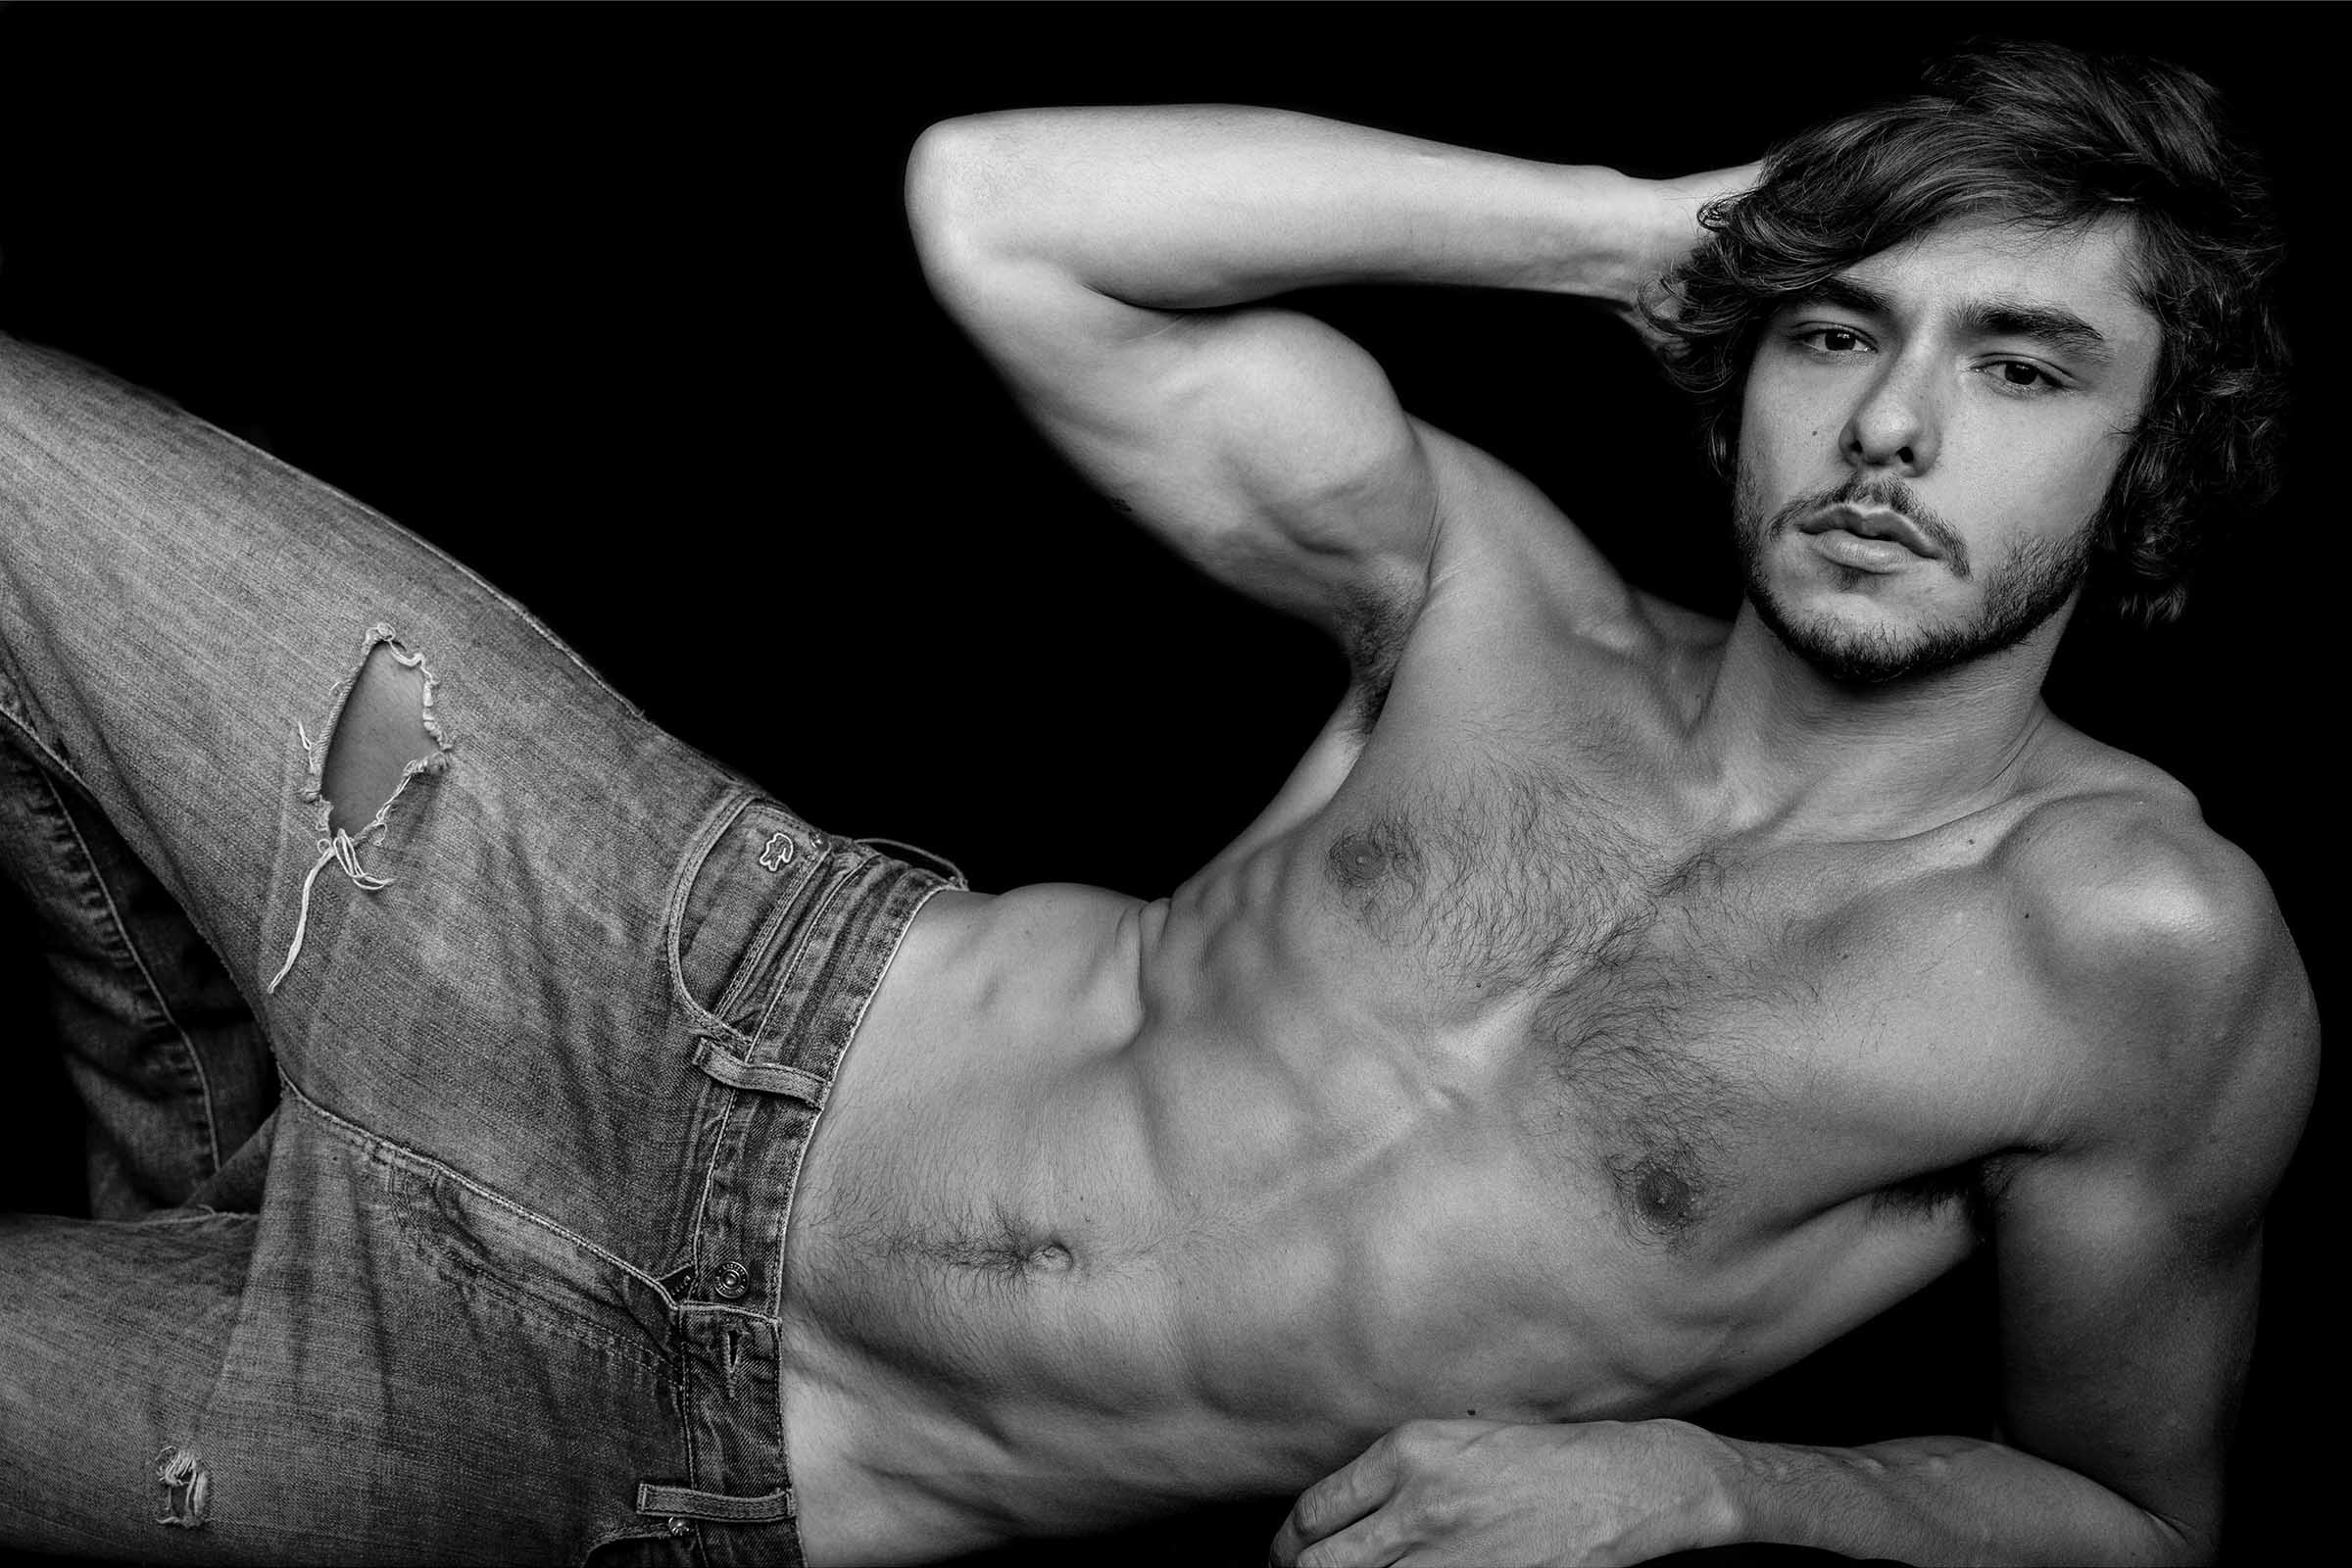 André Zomkowski by Gilson de Rezende for Brazilian Male Model